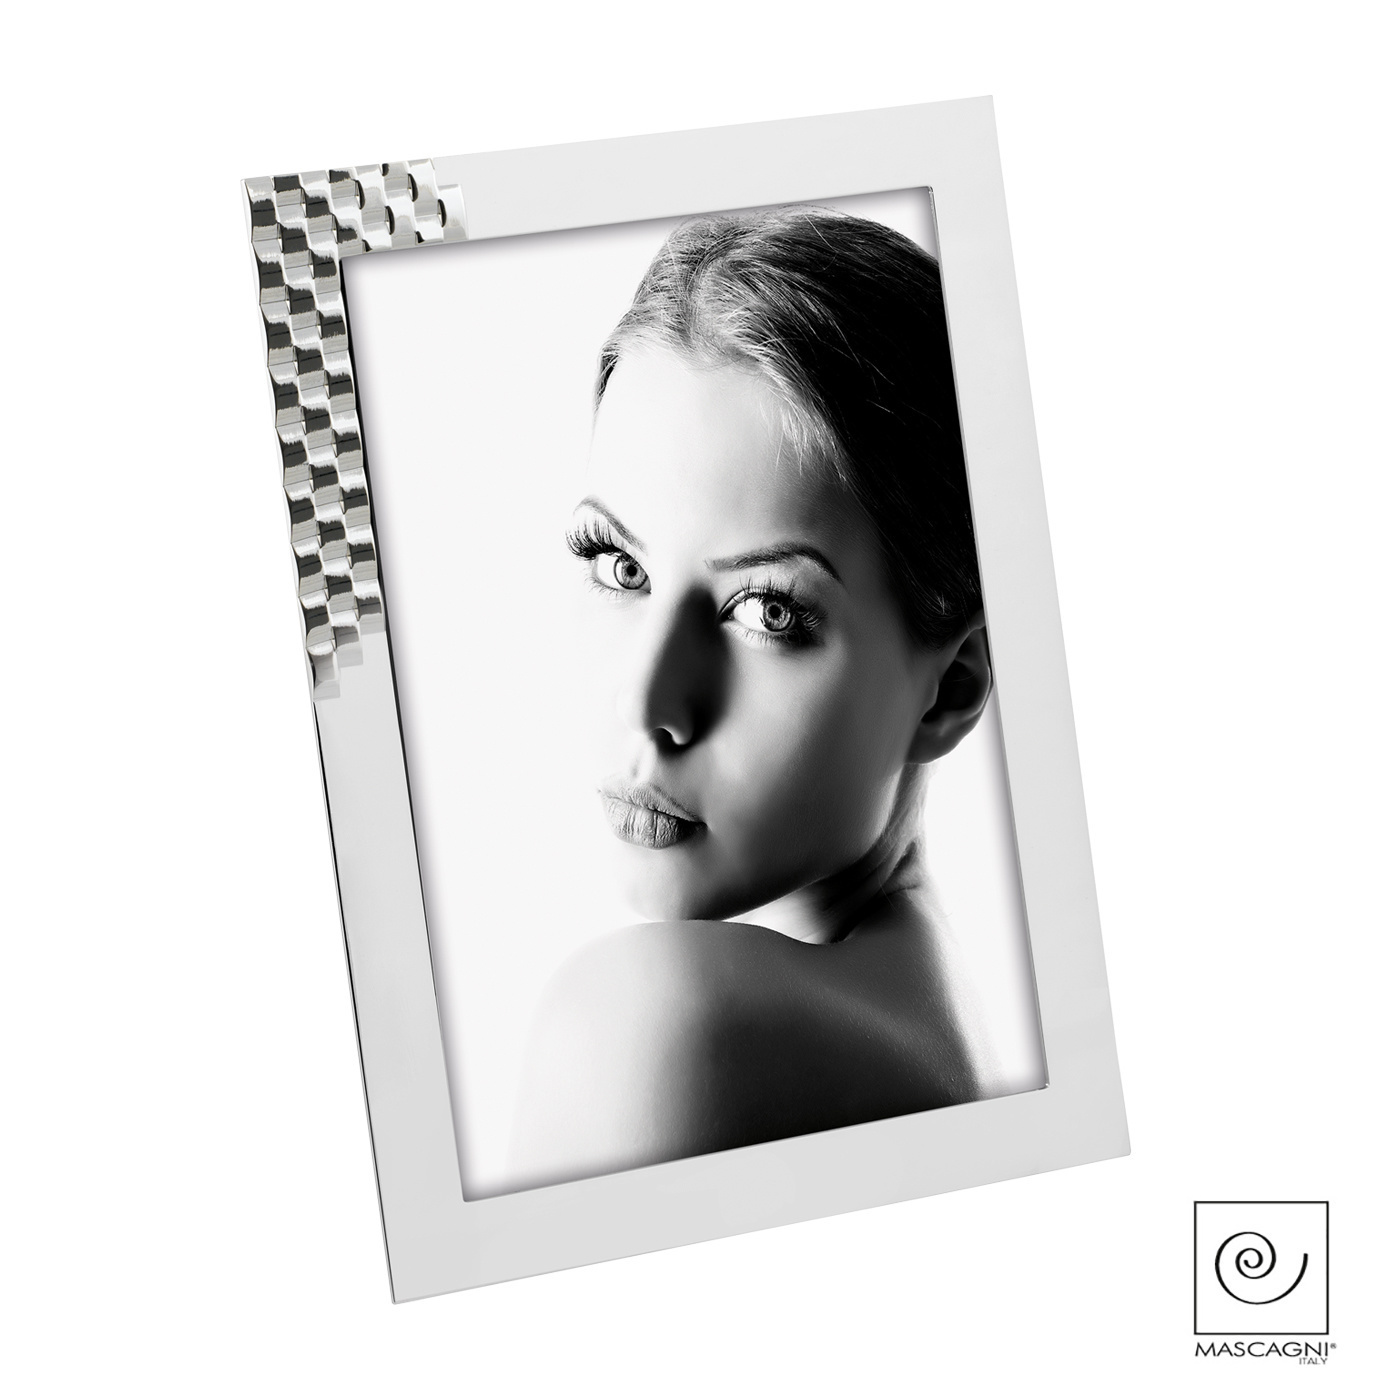 Art Mascagni A1058 PHOTO FRAME 13X18